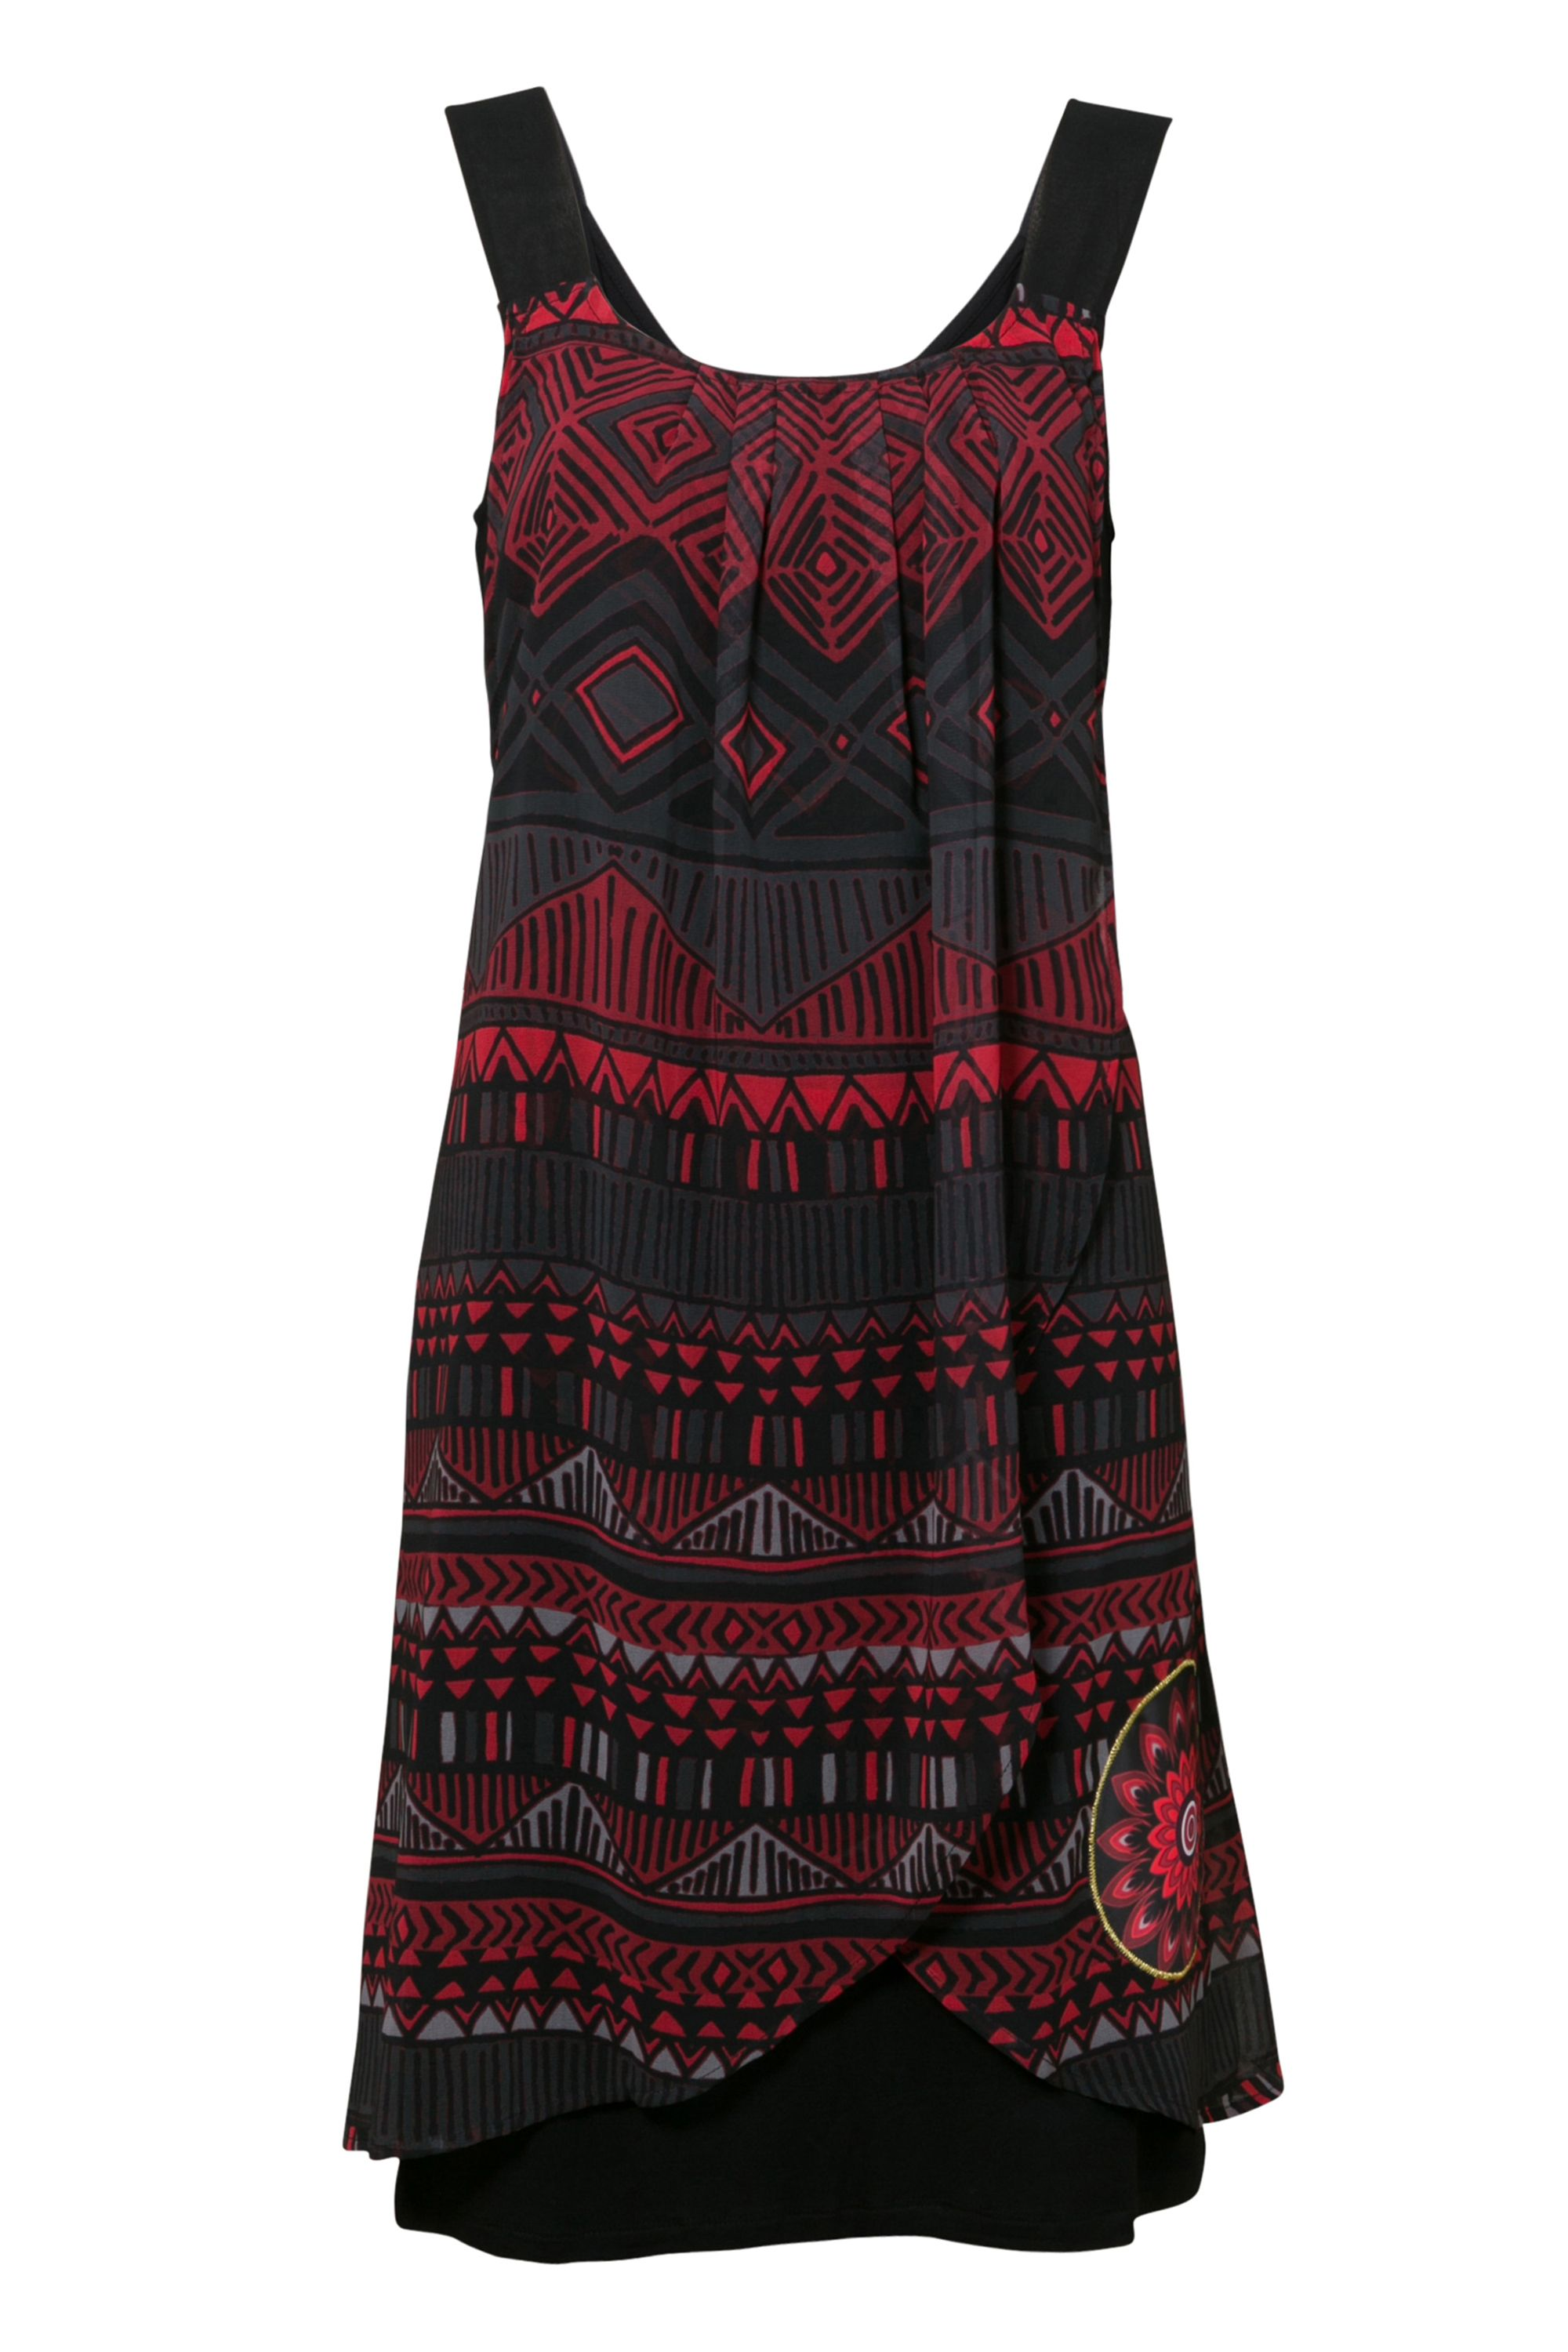 Desigual Dress Lorna Black New, Black